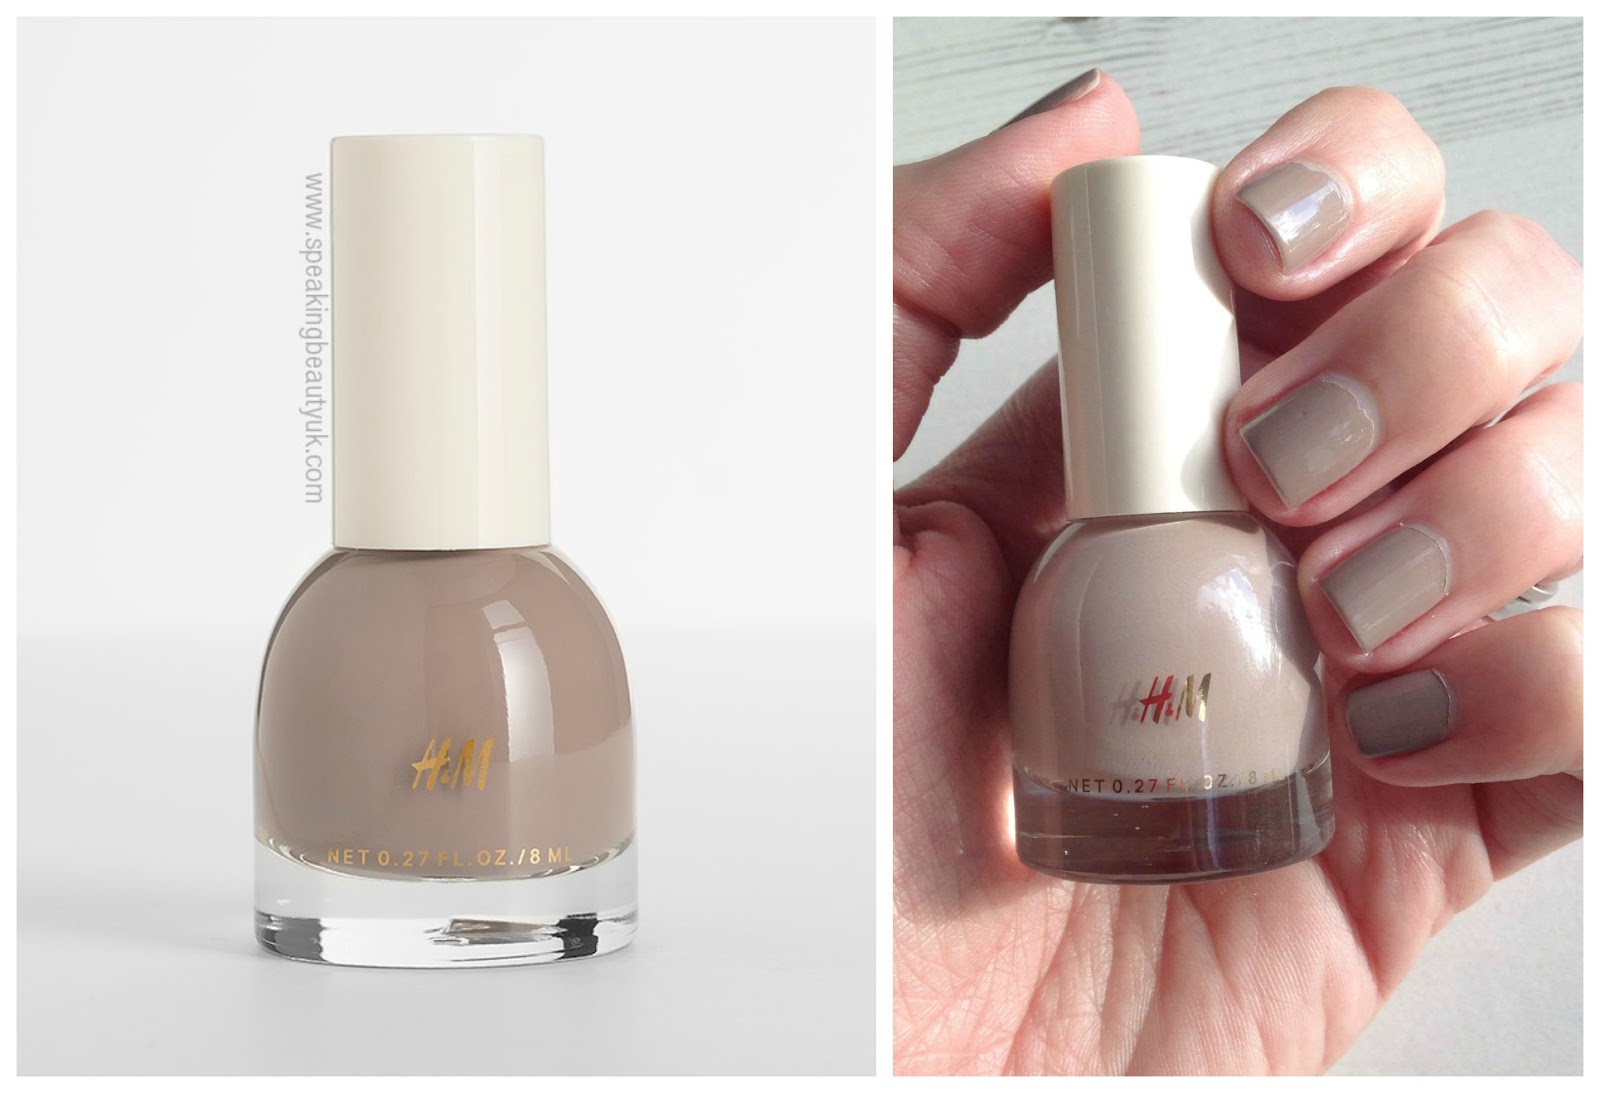 H&M Nail Polish in Go To Greige